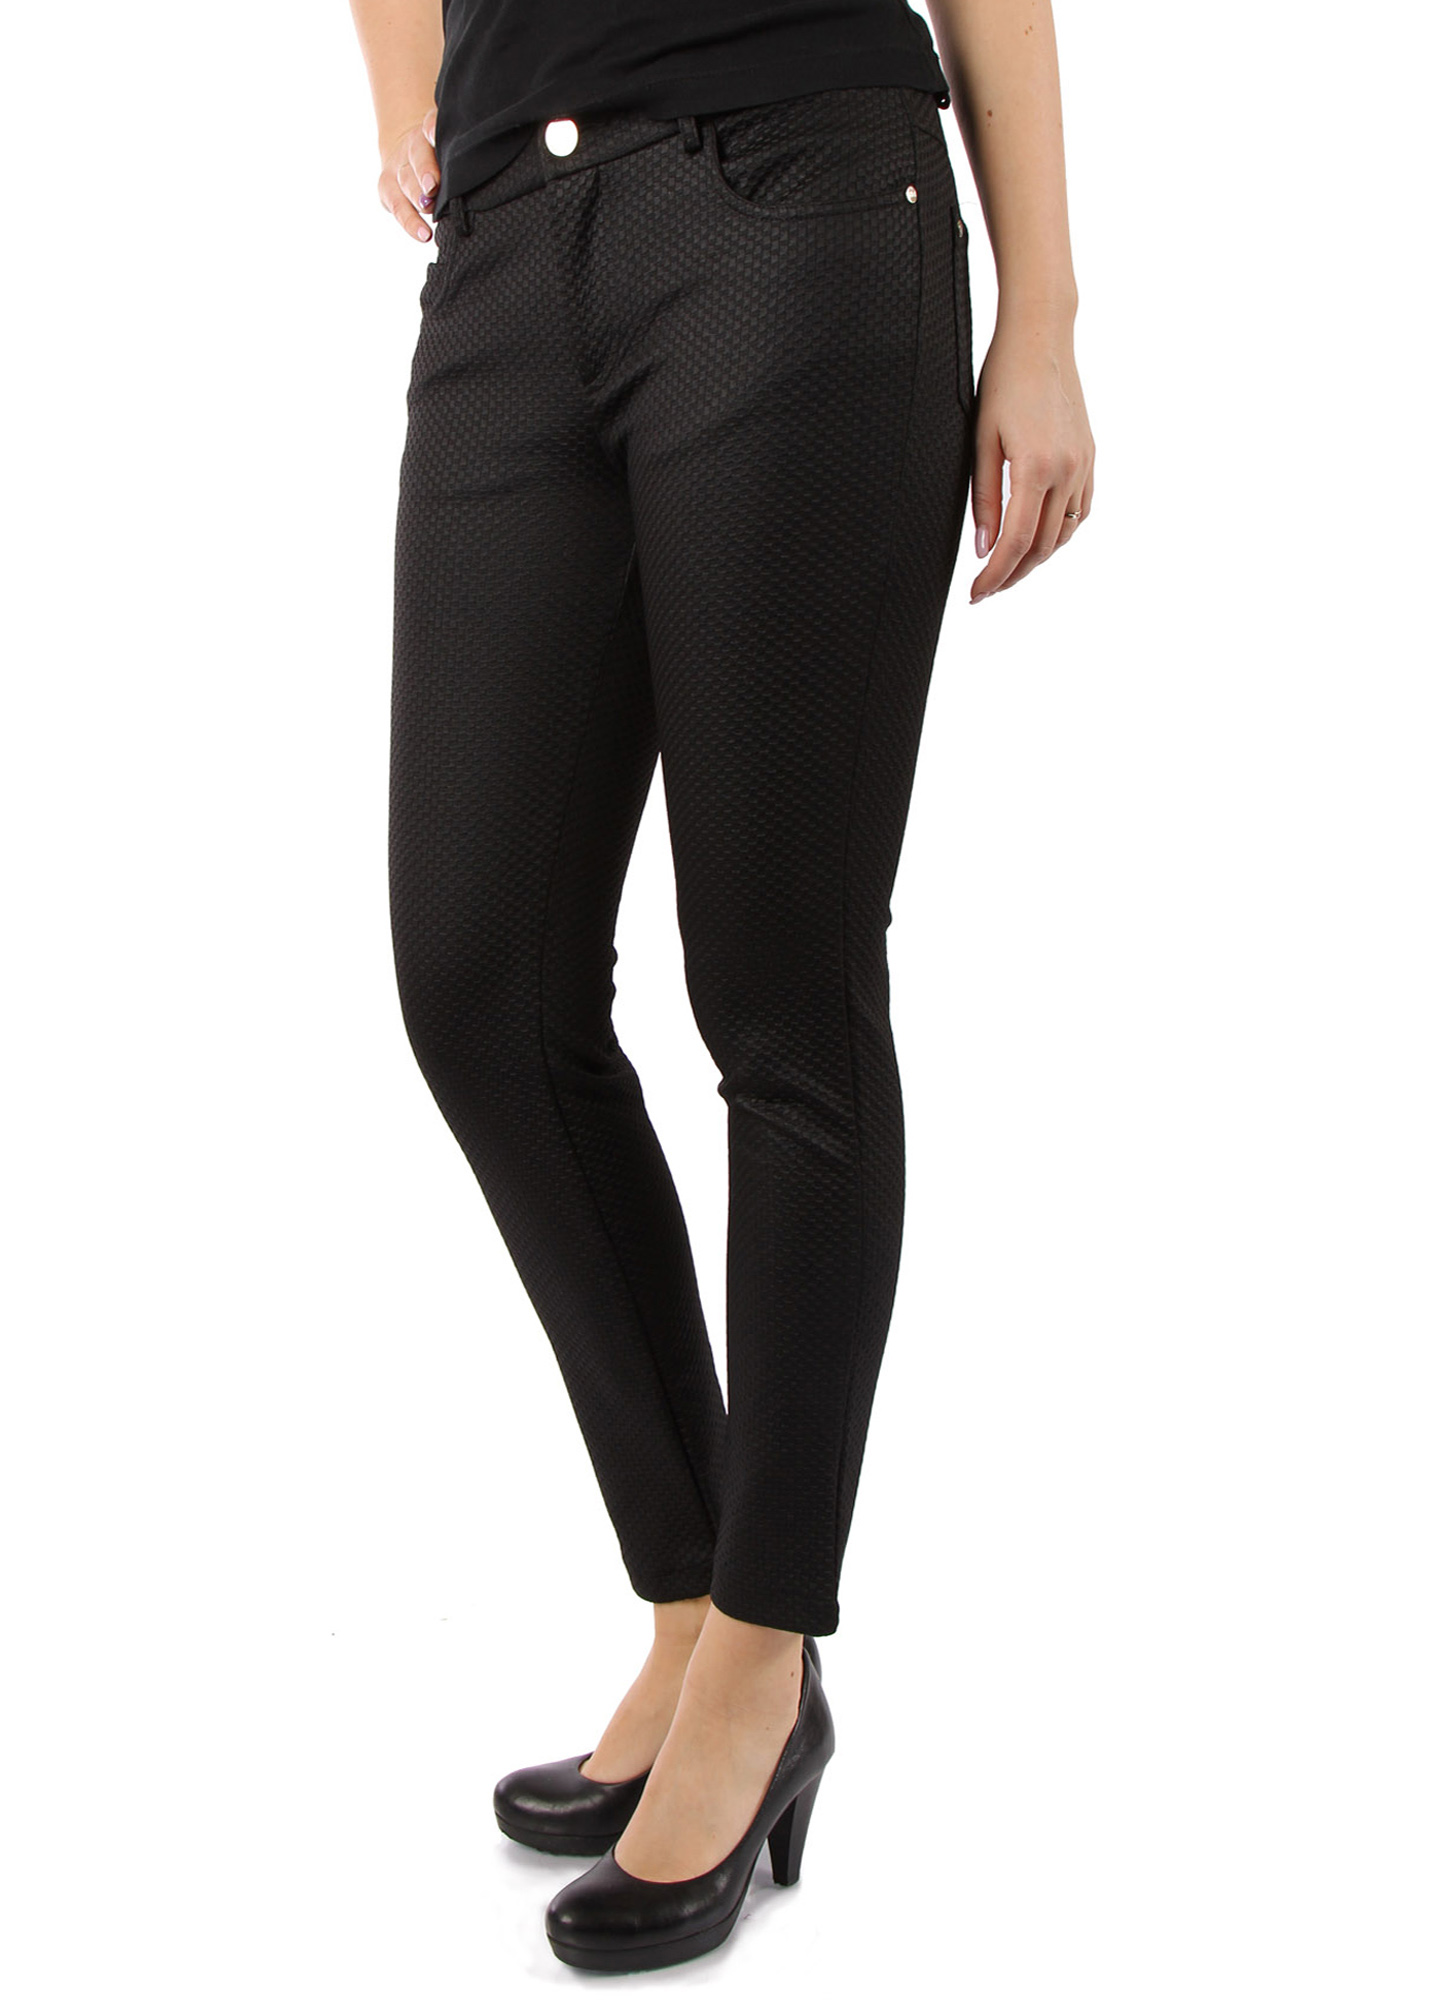 TROUSERS - Shorts Roberta Biagi Sale Excellent Cheap Online Store Manchester Cheap Excellent Free Shipping Footlocker Good Selling Cheap Price 6qsv78